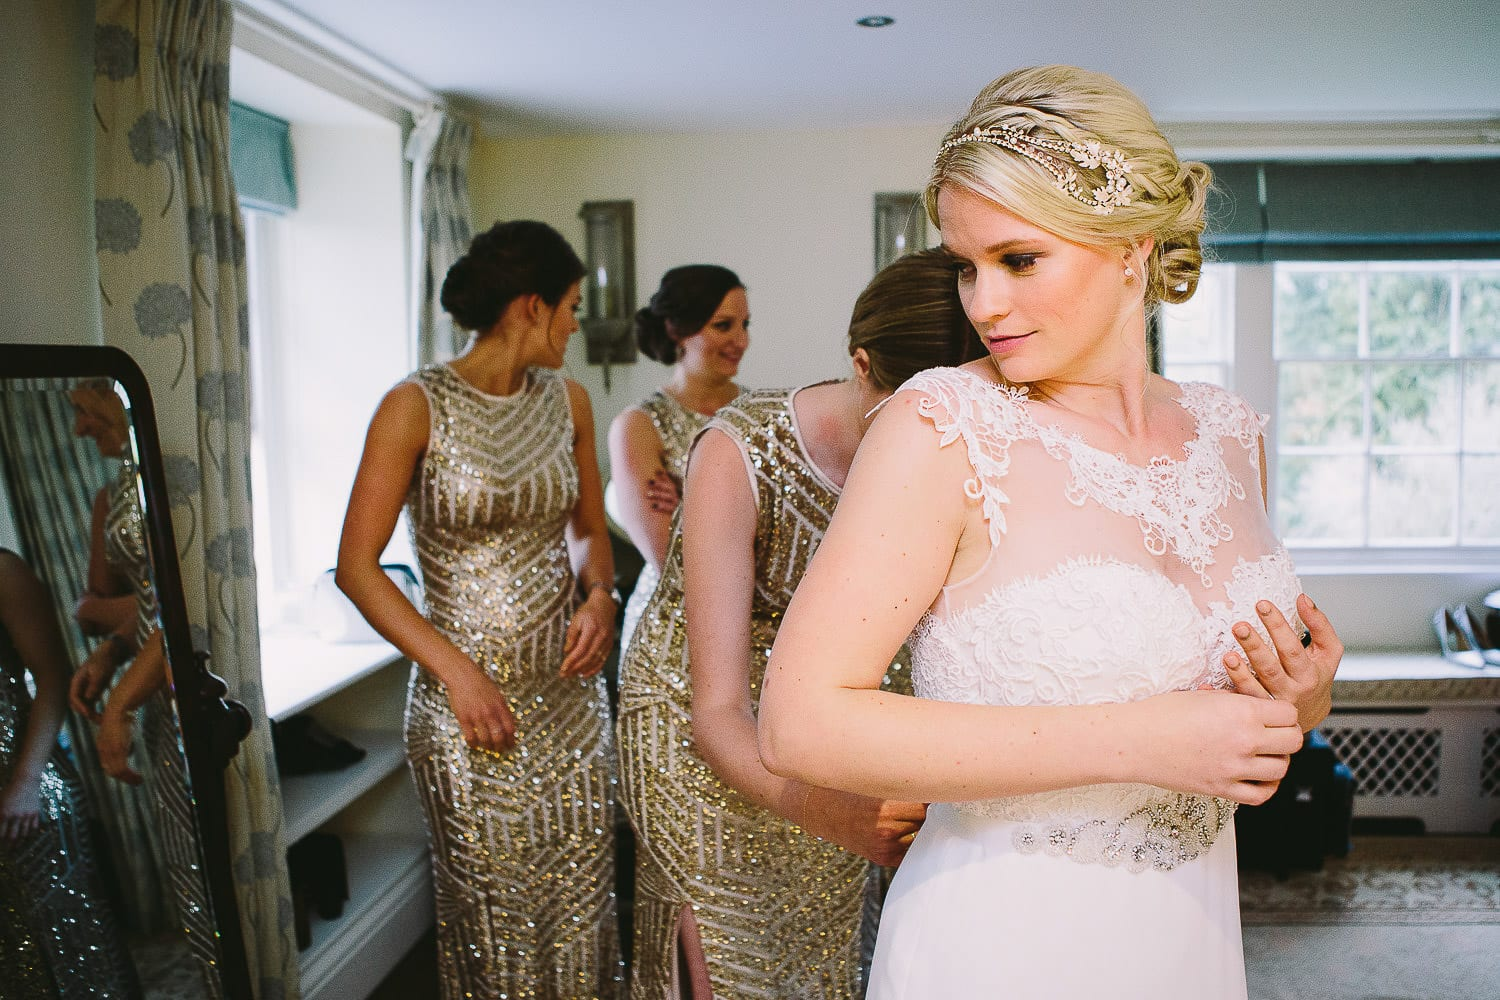 the bride checks her dress in the mirror